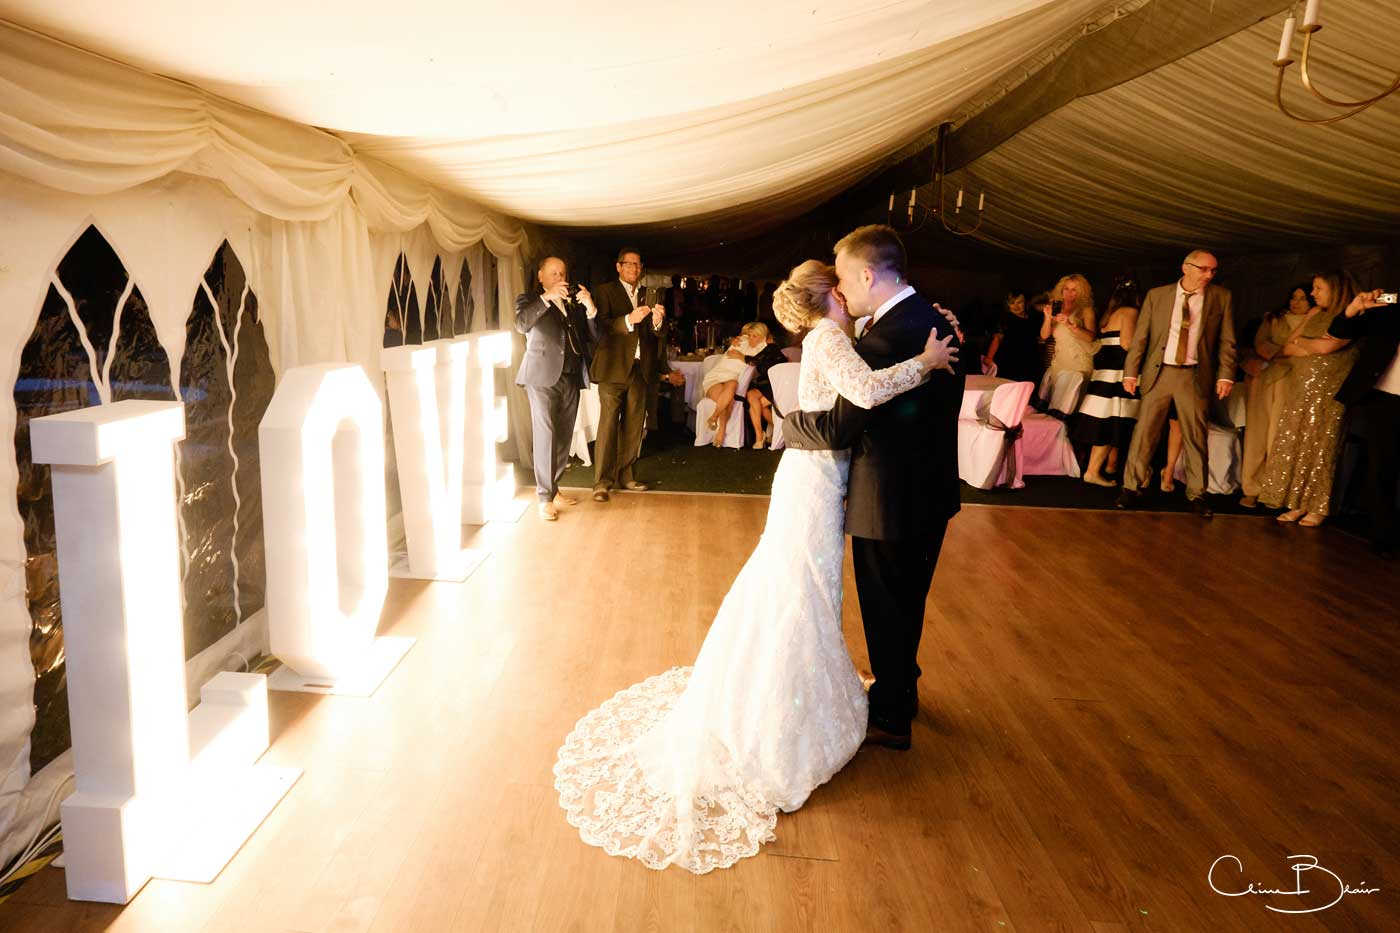 Bride and groom on dance floor during their first dance at Grafton Manor